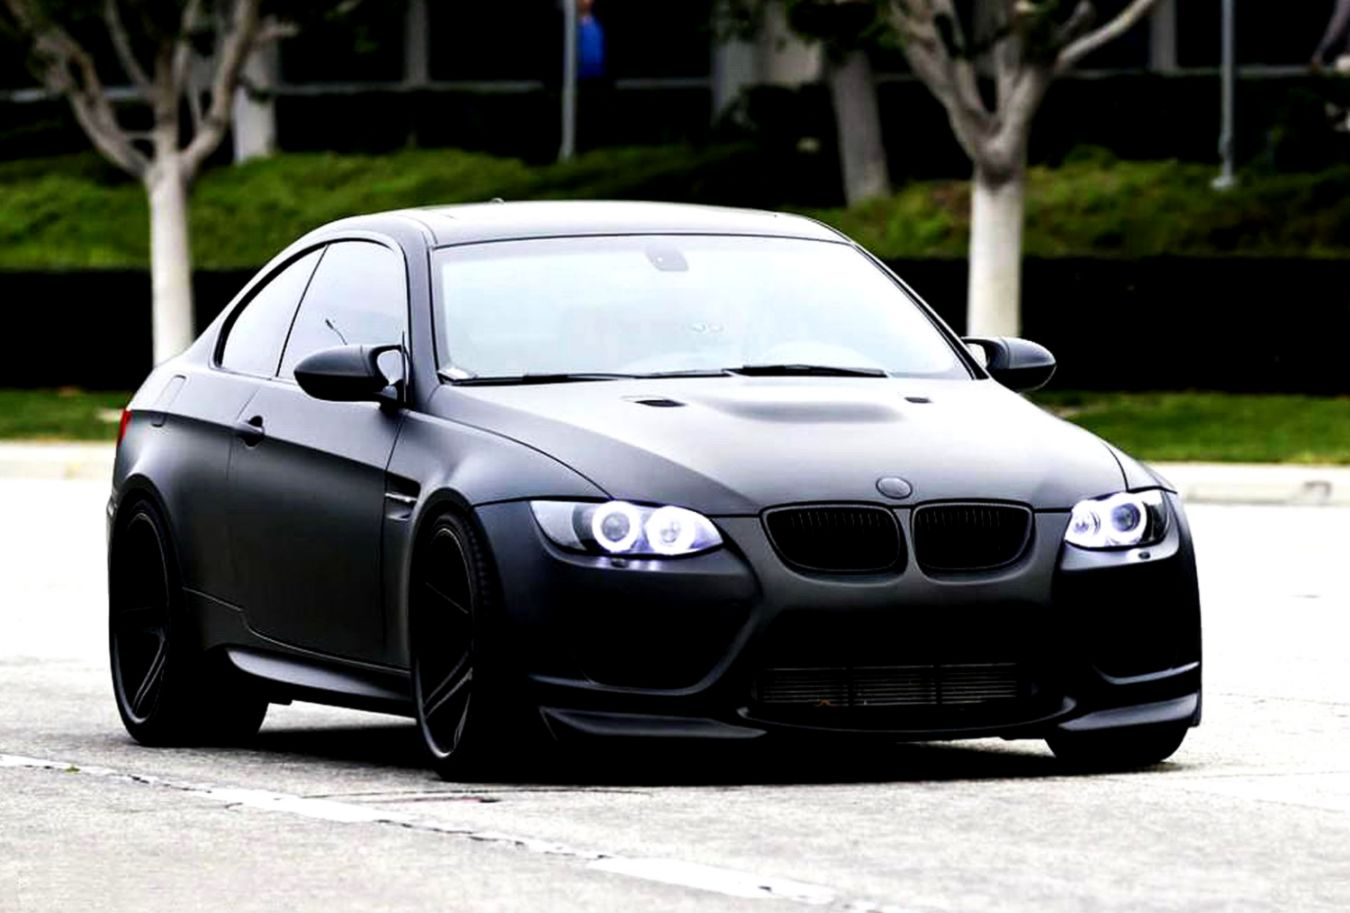 Bmw M3 2014 Coupe Black Hd Wallpapers For You